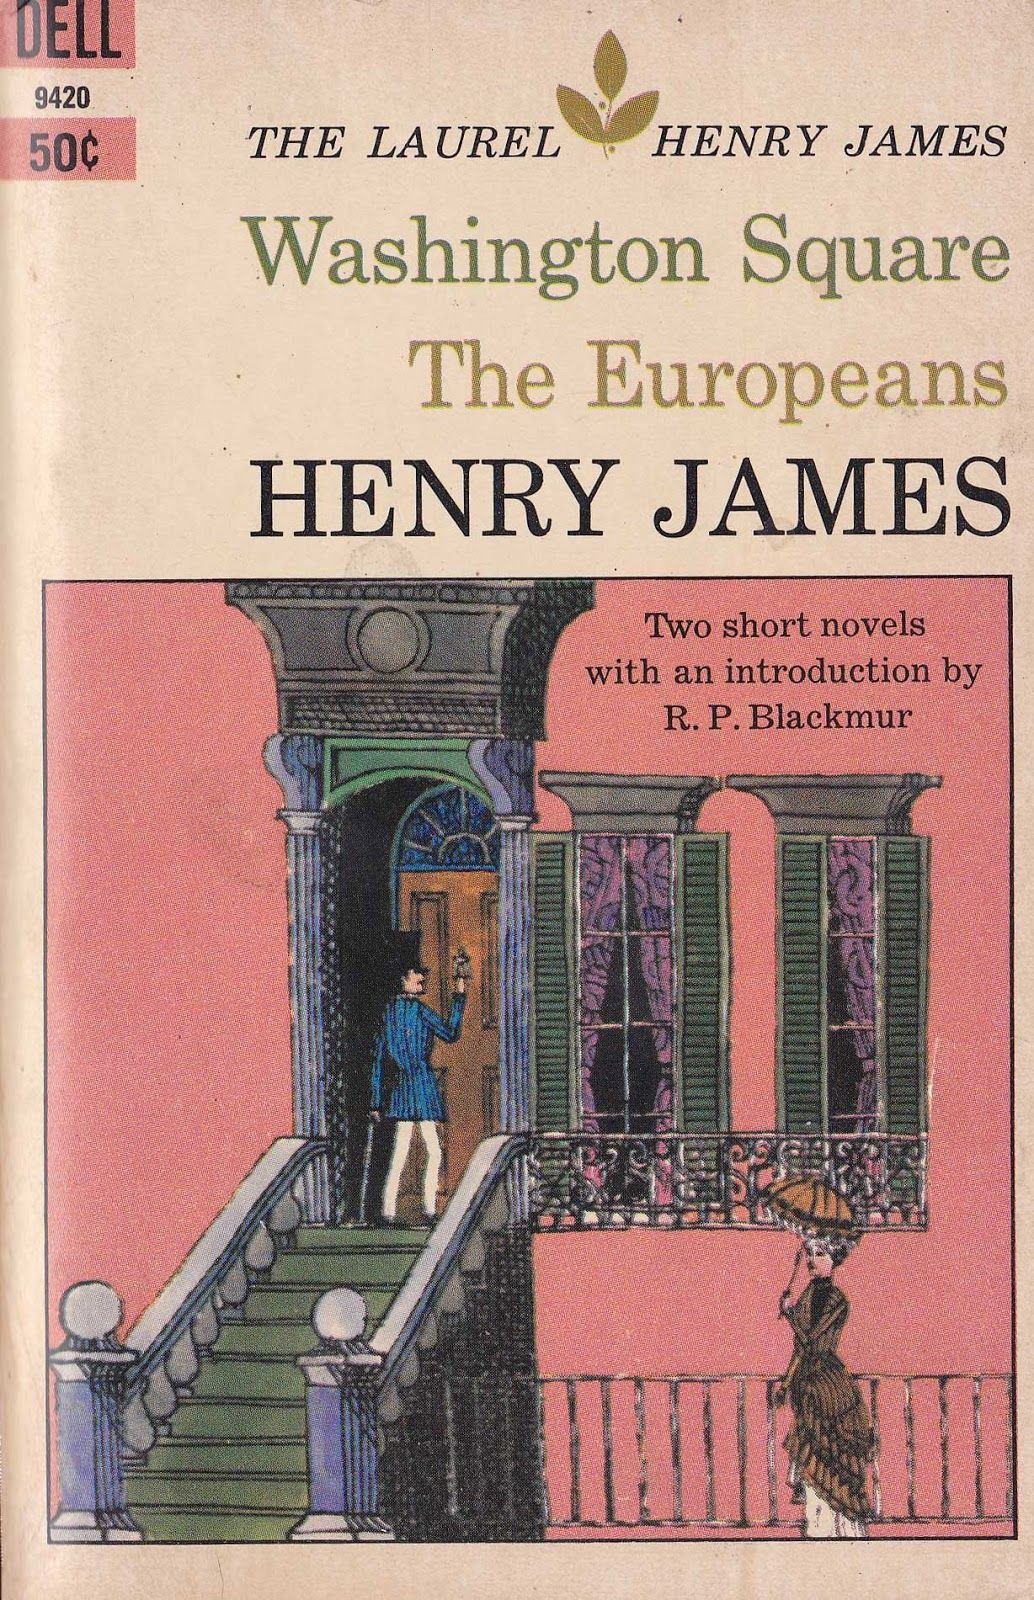 Washington Square and The Europeans, by Henry James